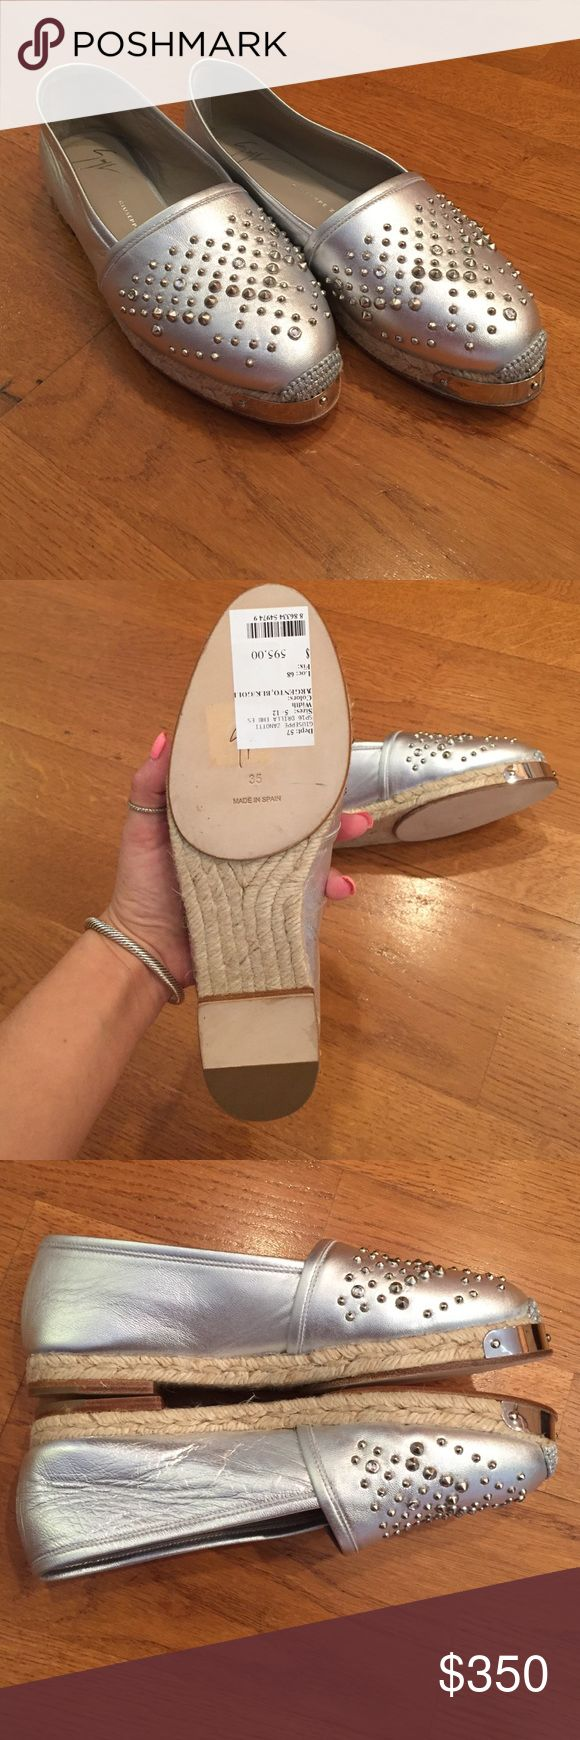 Giuseppe Zanotti Silver Espadrilles Brand new flats. With studs on front. In excellent condition. Beautiful on. NWT. Comes with original box and bag. Giuseppe Zanotti Shoes Espadrilles